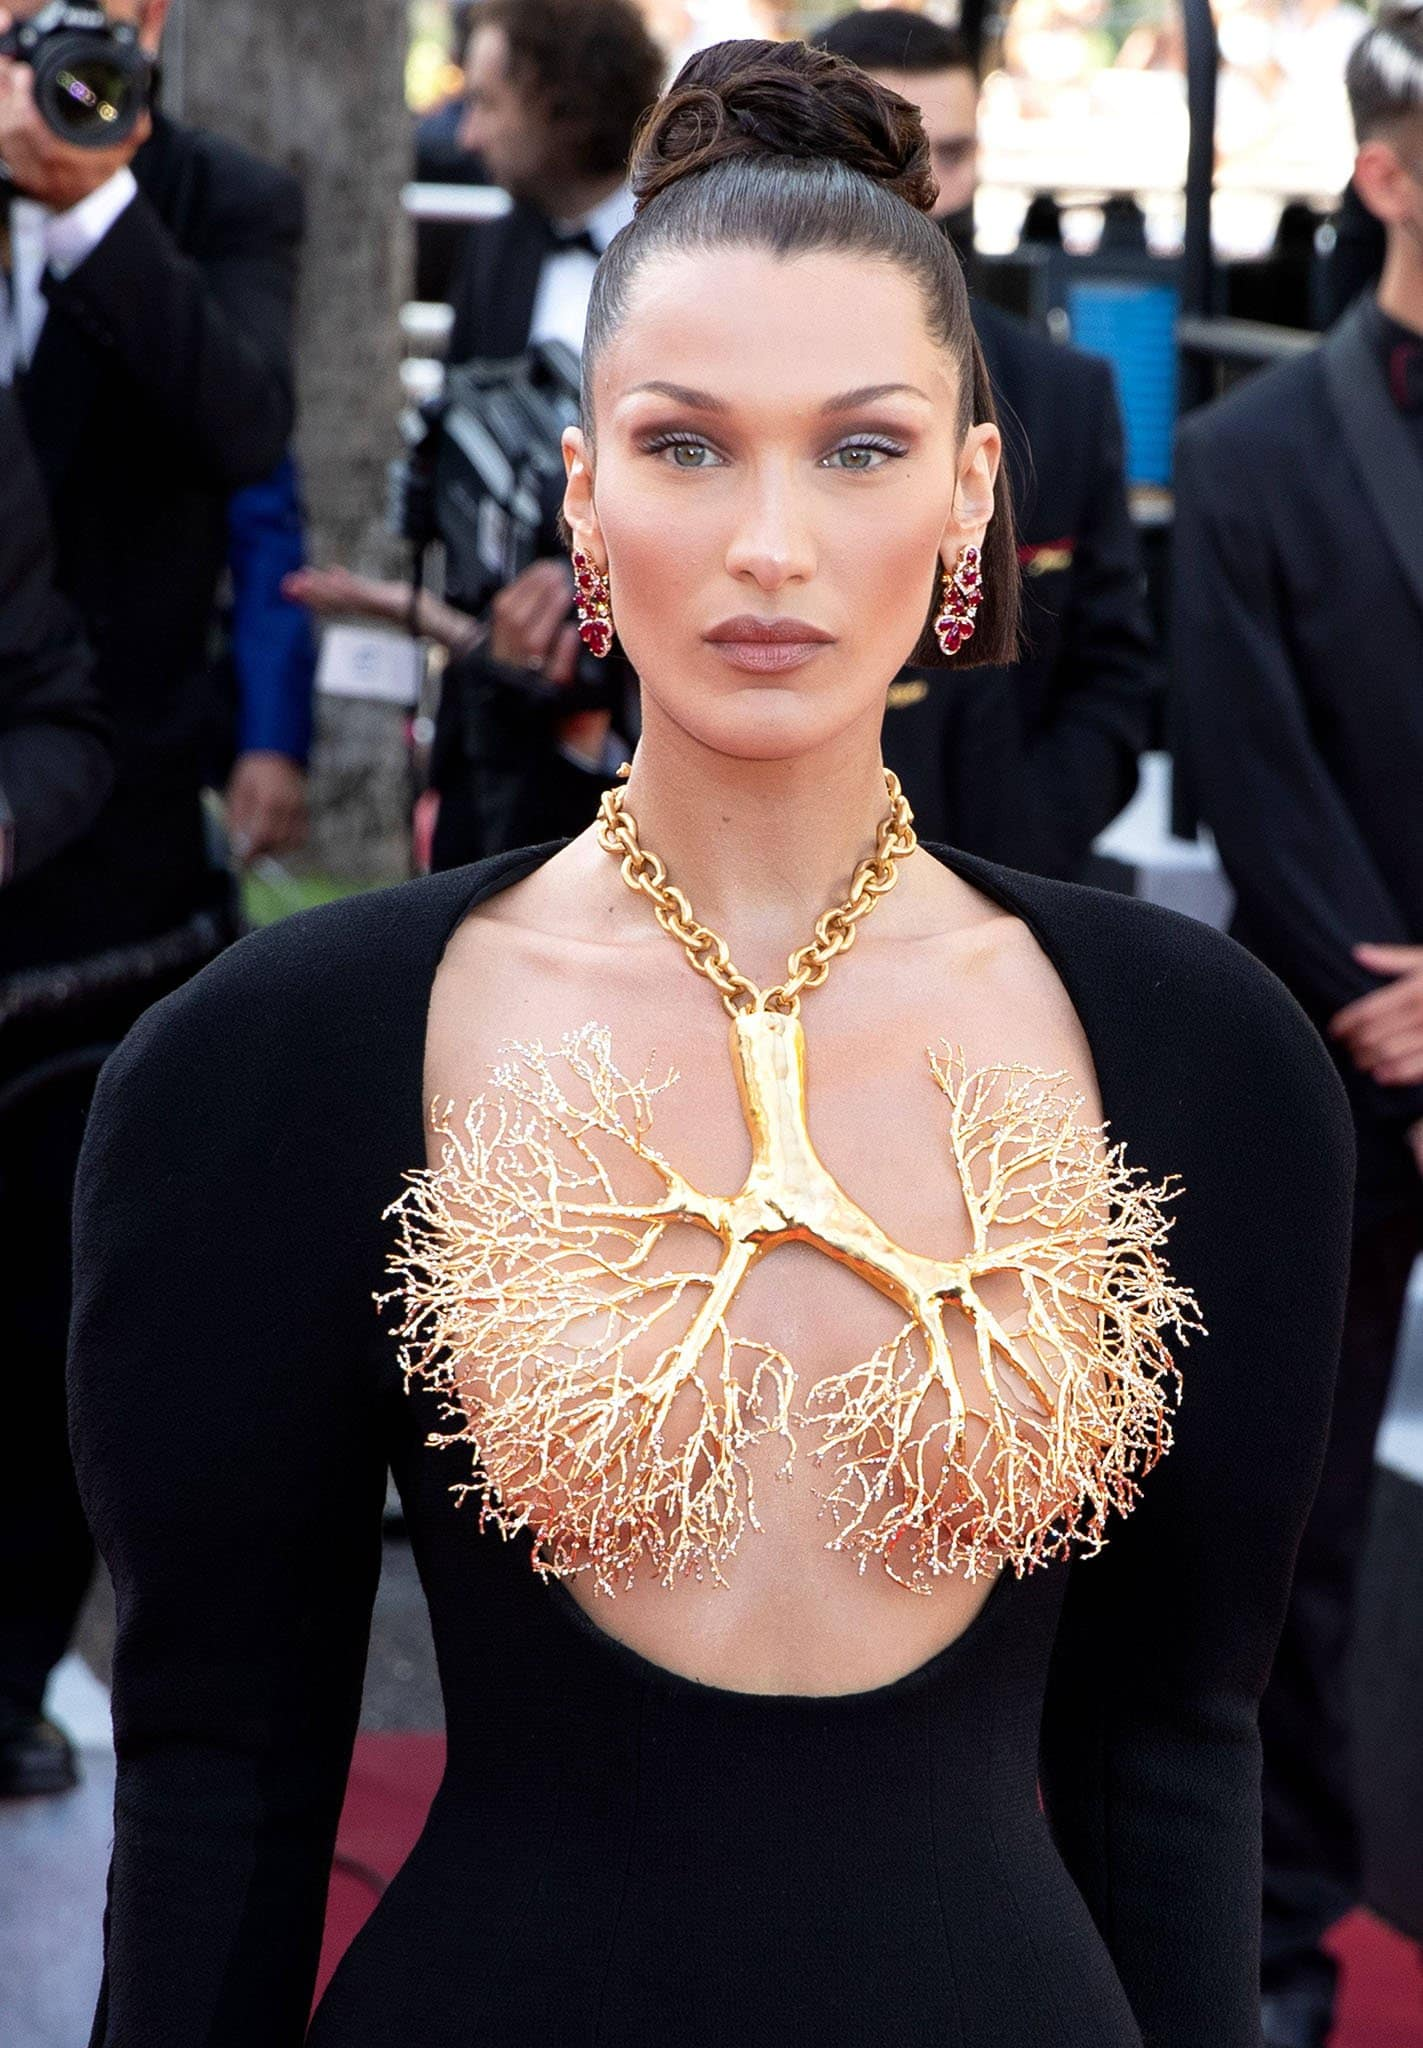 Wearing a gilded brass necklace of a human lung's pulmonary veins, Bella Hadid styles her tresses in an intricate updo and wears smokey eyeshadow with nude lipstick